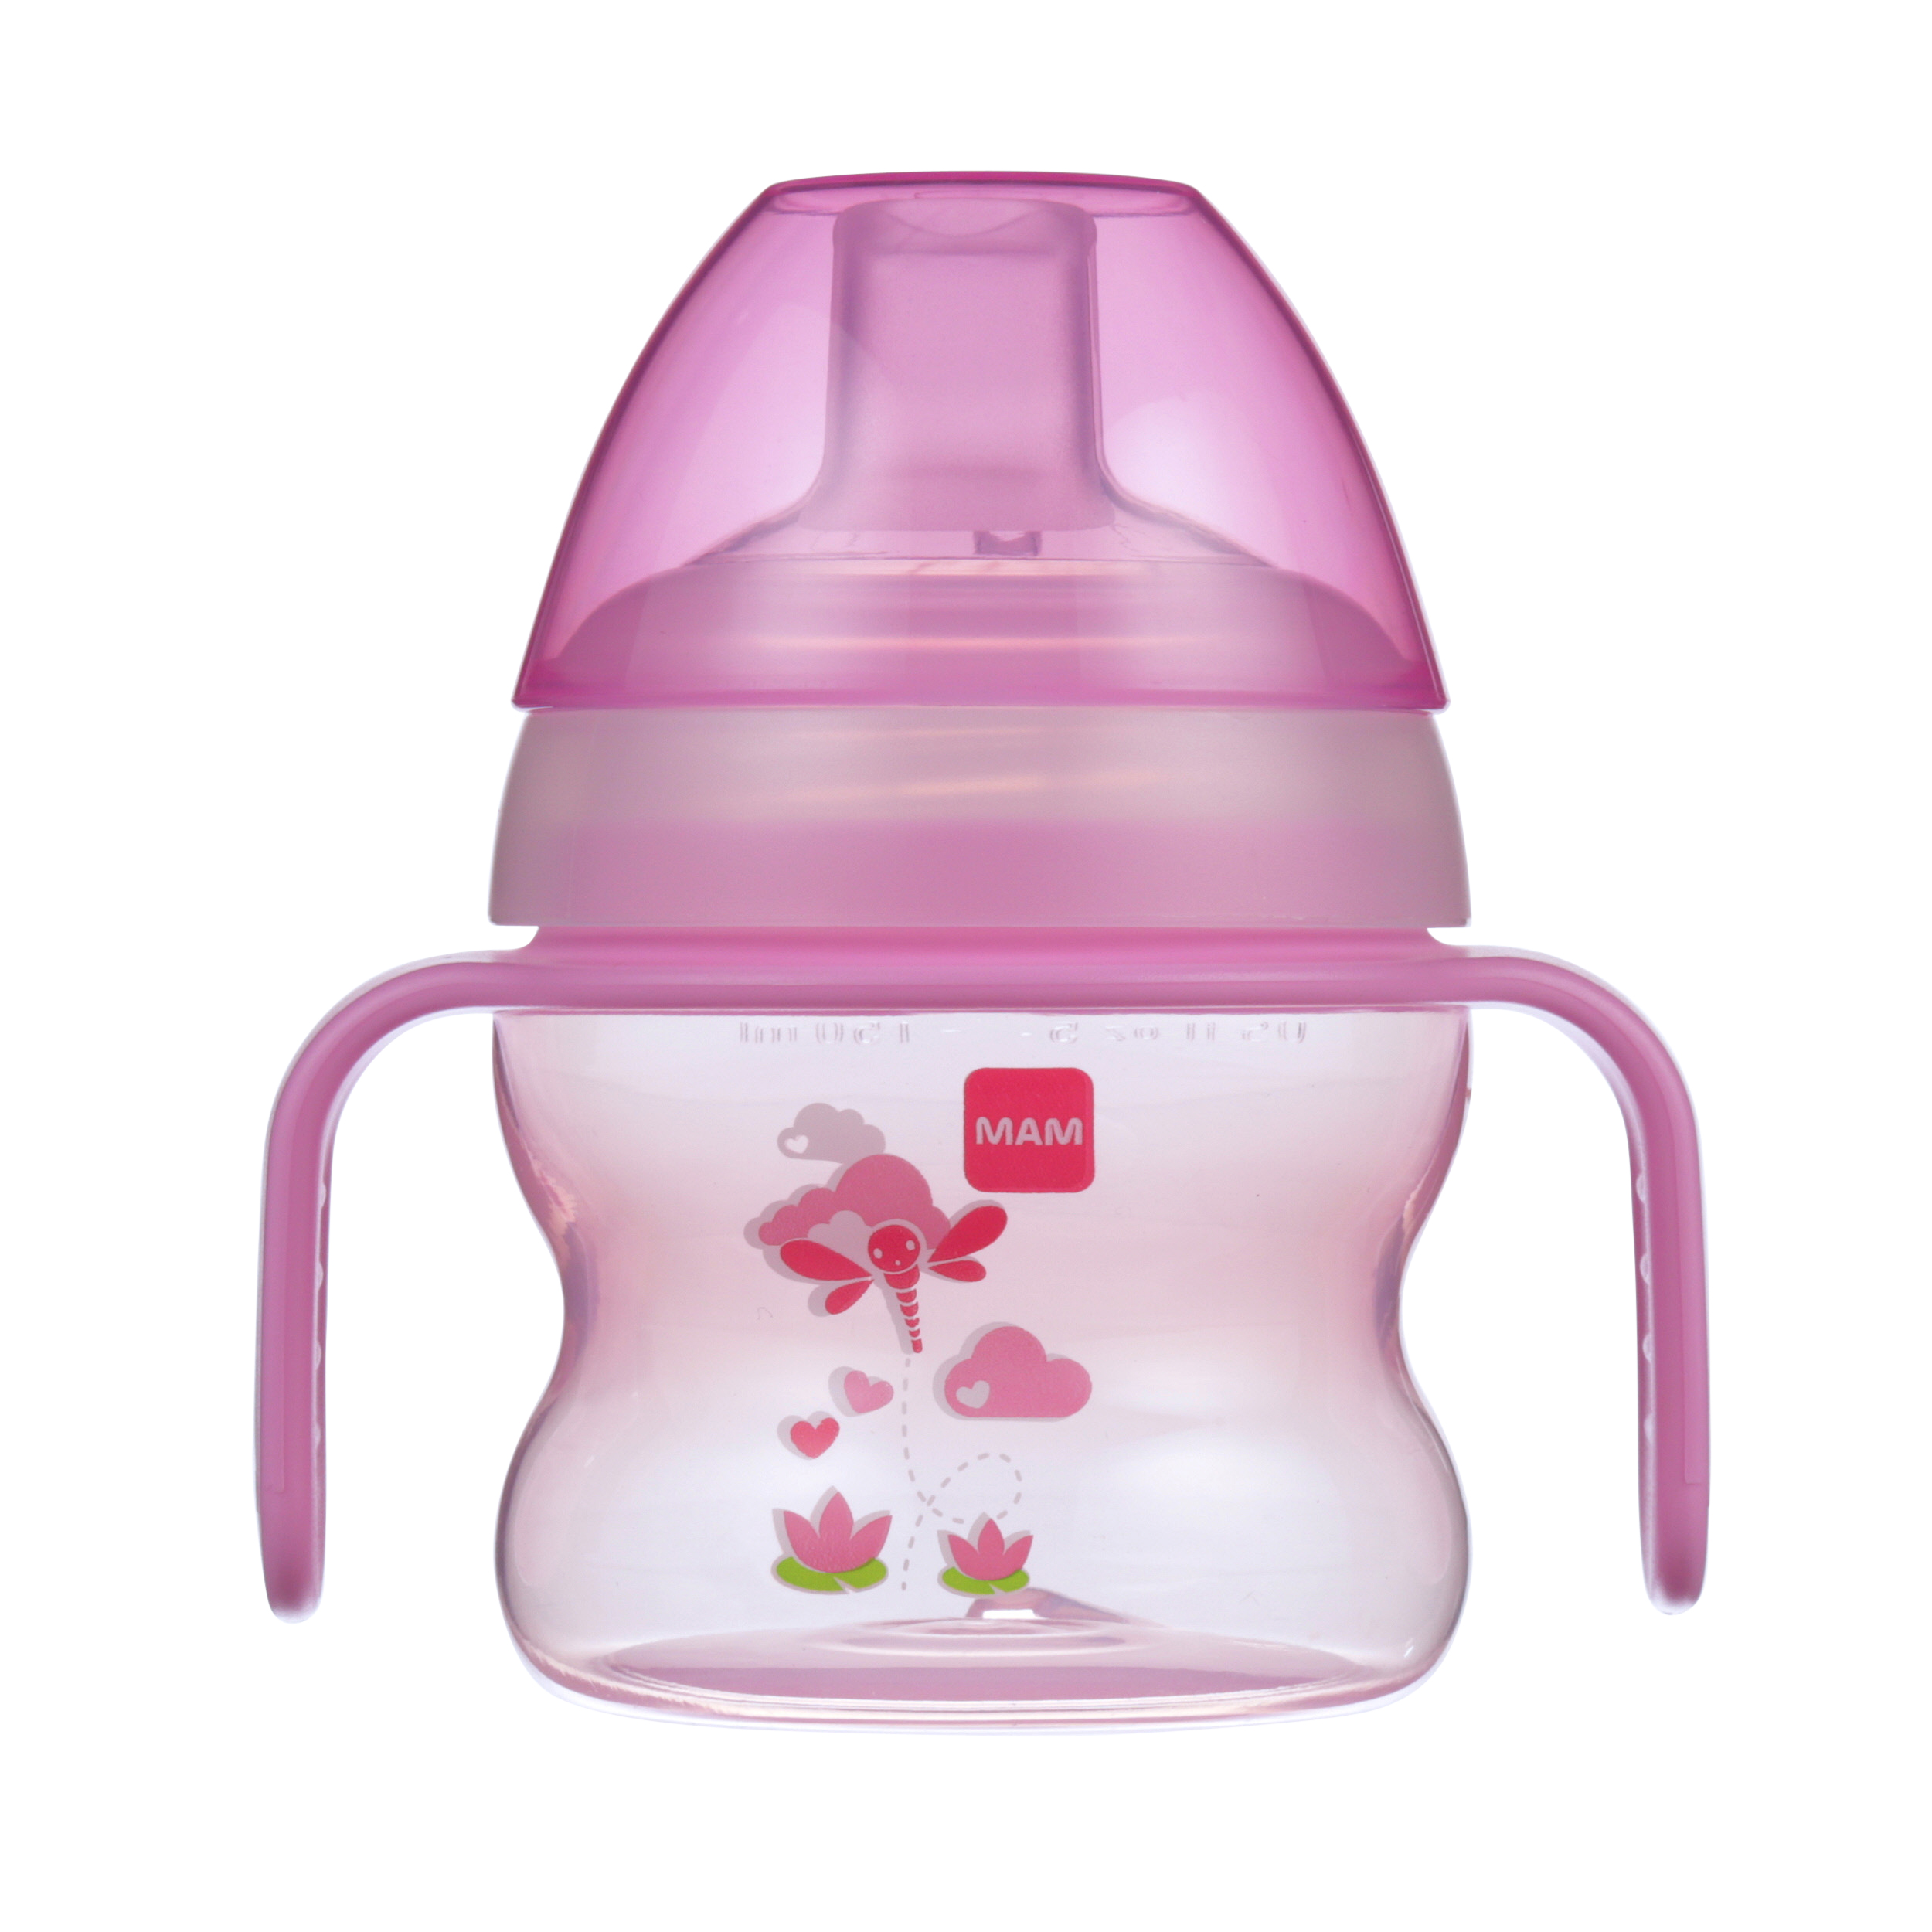 MAM Starter Cup with extra soft spout, 5 oz, 1-Count, Girl by MAM